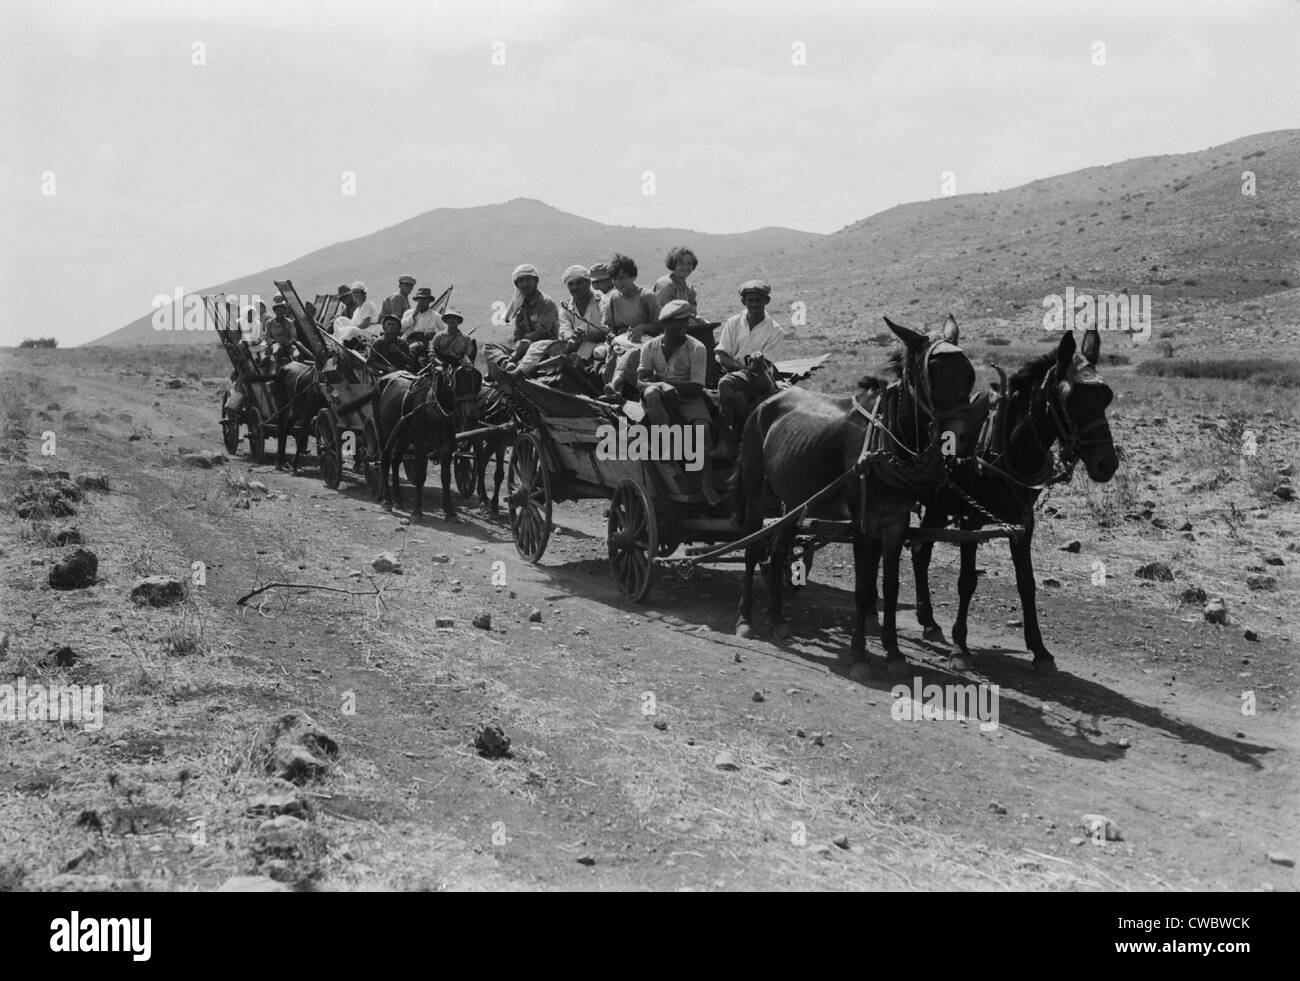 Jewish settlers arriving to establish an communal agricultural settlement, a kibbutz, in Palestine in the 1920s. - Stock Image